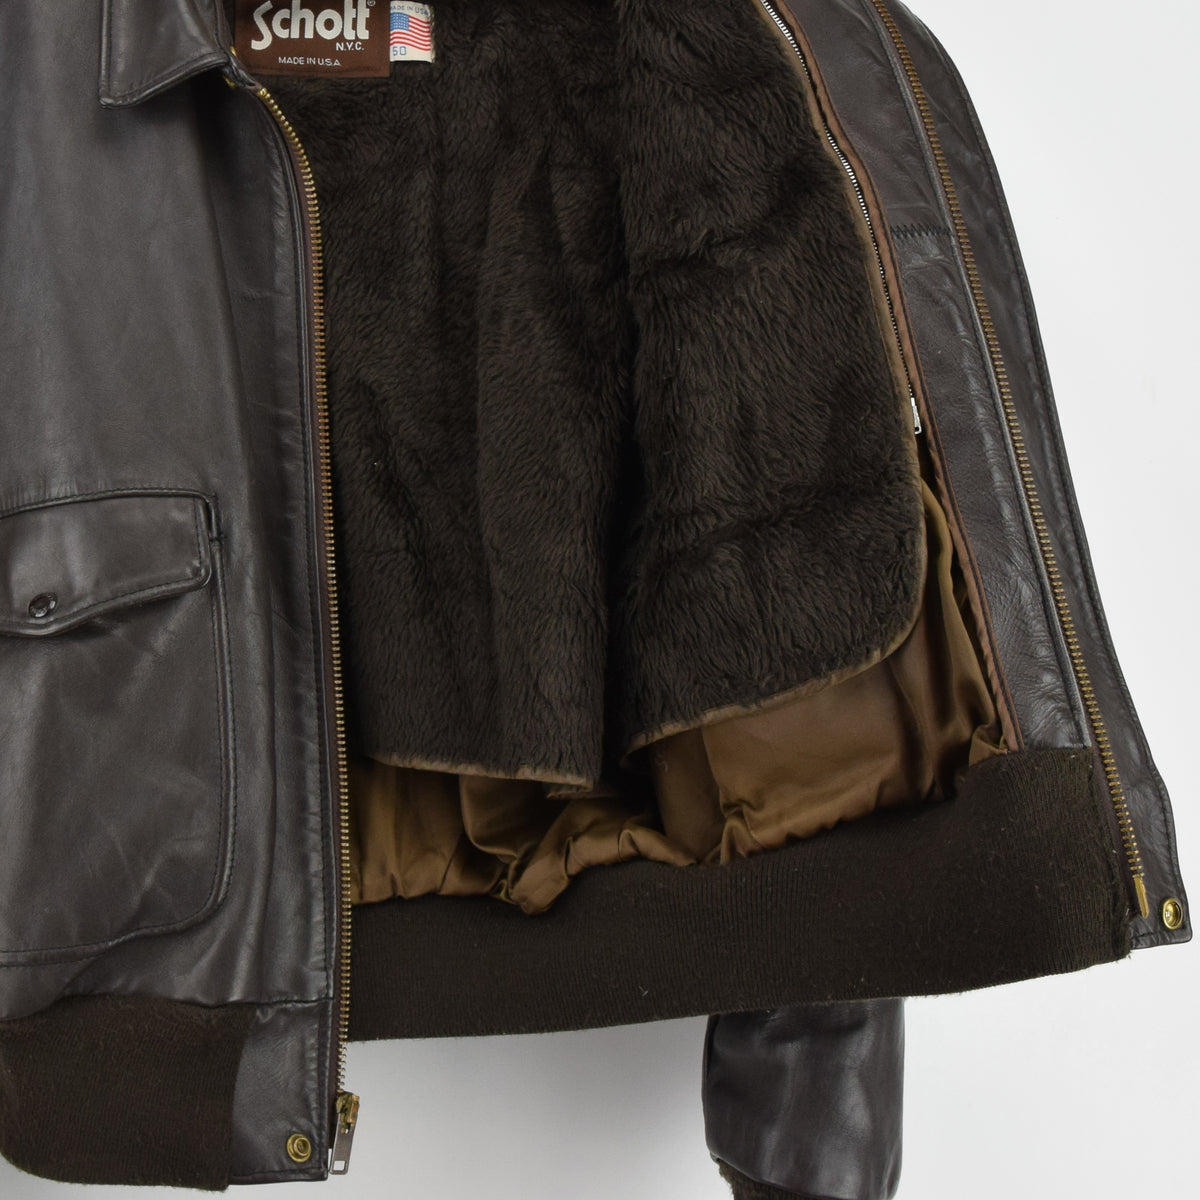 Vintage Schott A-2 Brown Cowhide Leather Flight Bomber Jacket Made in USA XXL lining